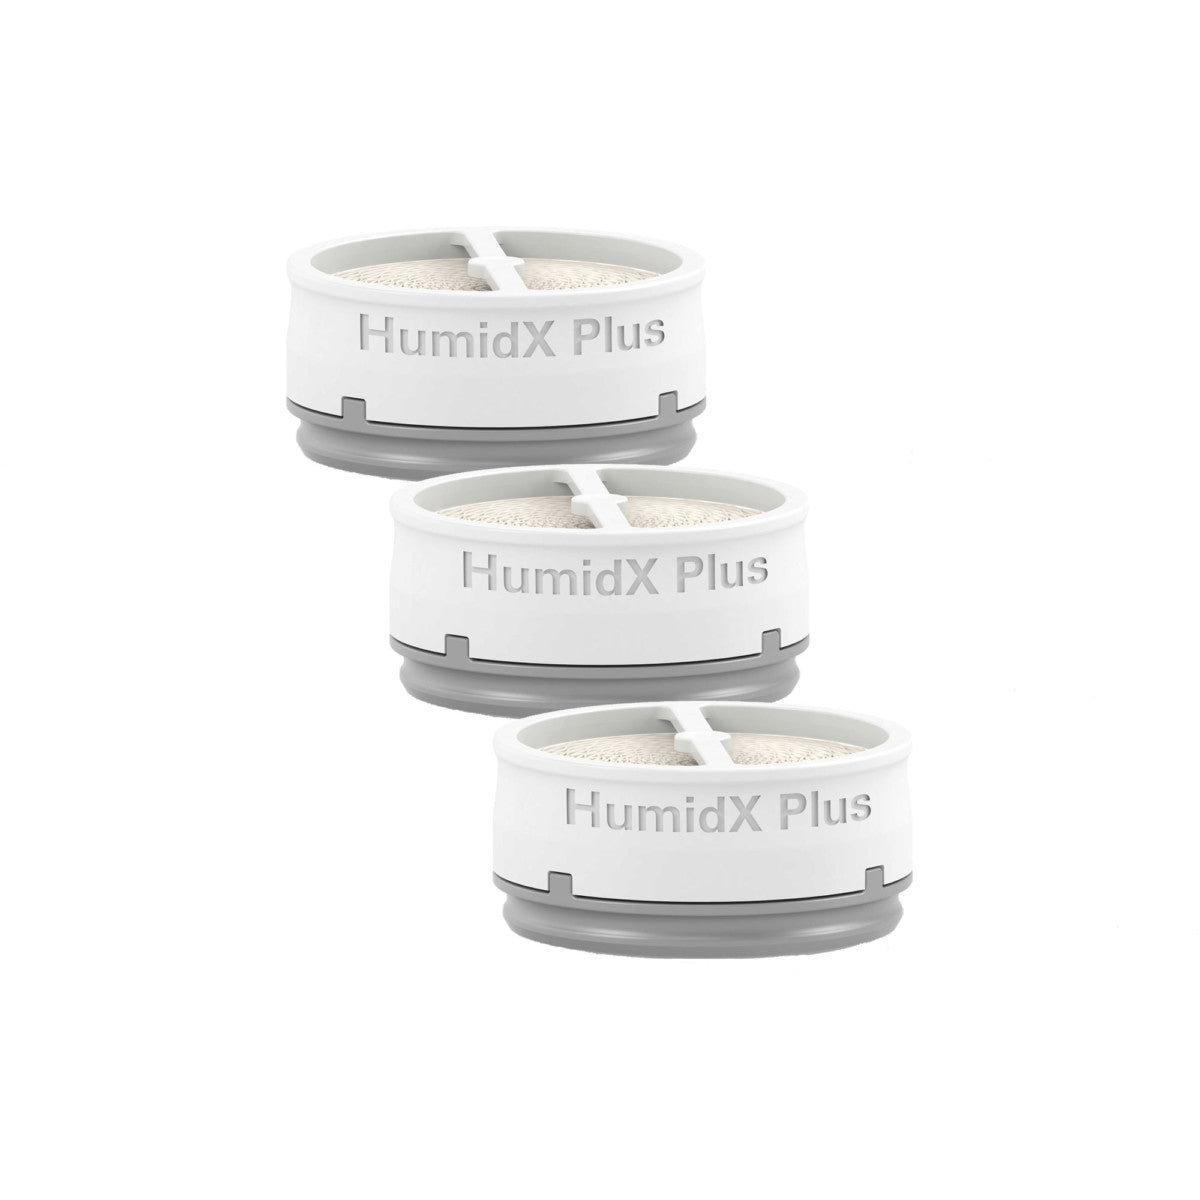 ResMed Air Mini Humid X Plus Filters - Canadian CPAP Supply